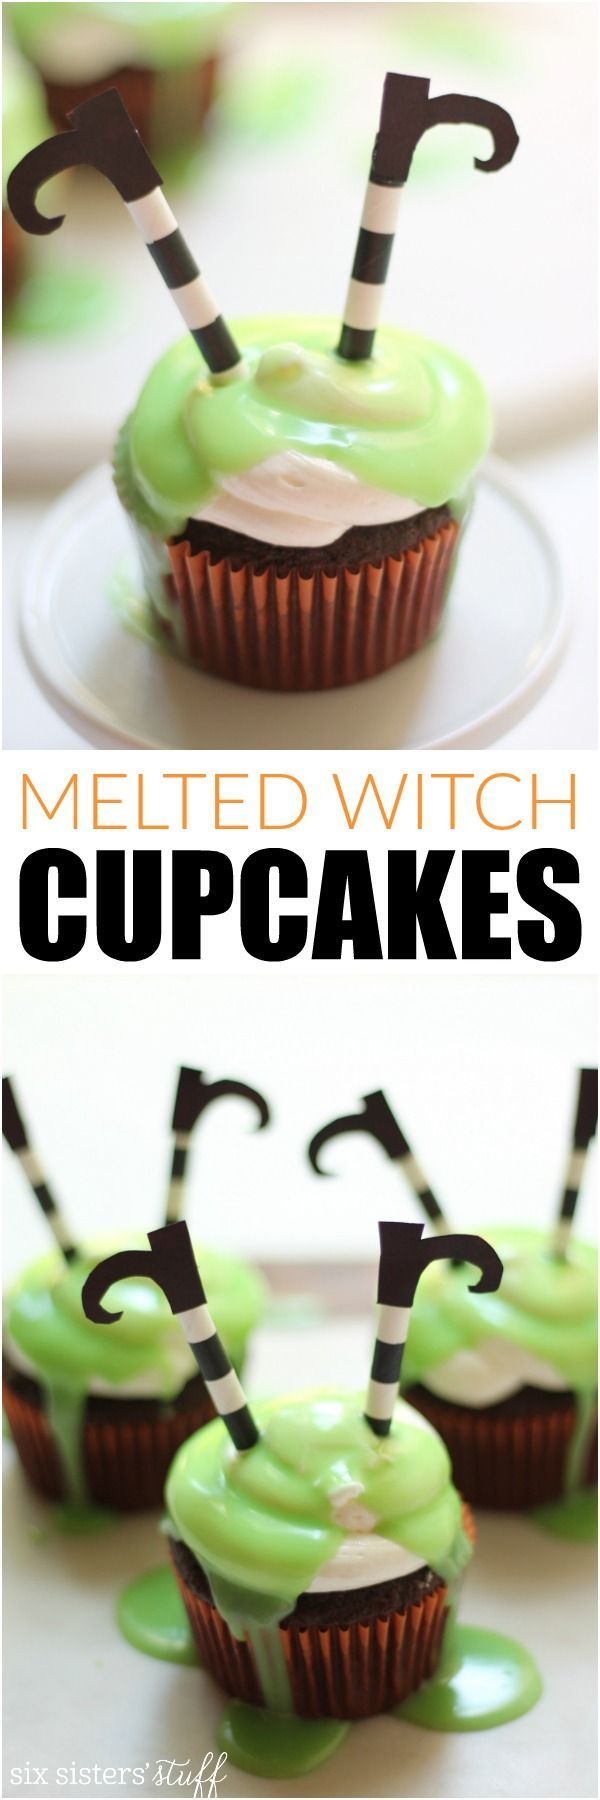 Melted Witch Cupcakes from SixSistersStuff.com | The perfect food for Halloween parties!